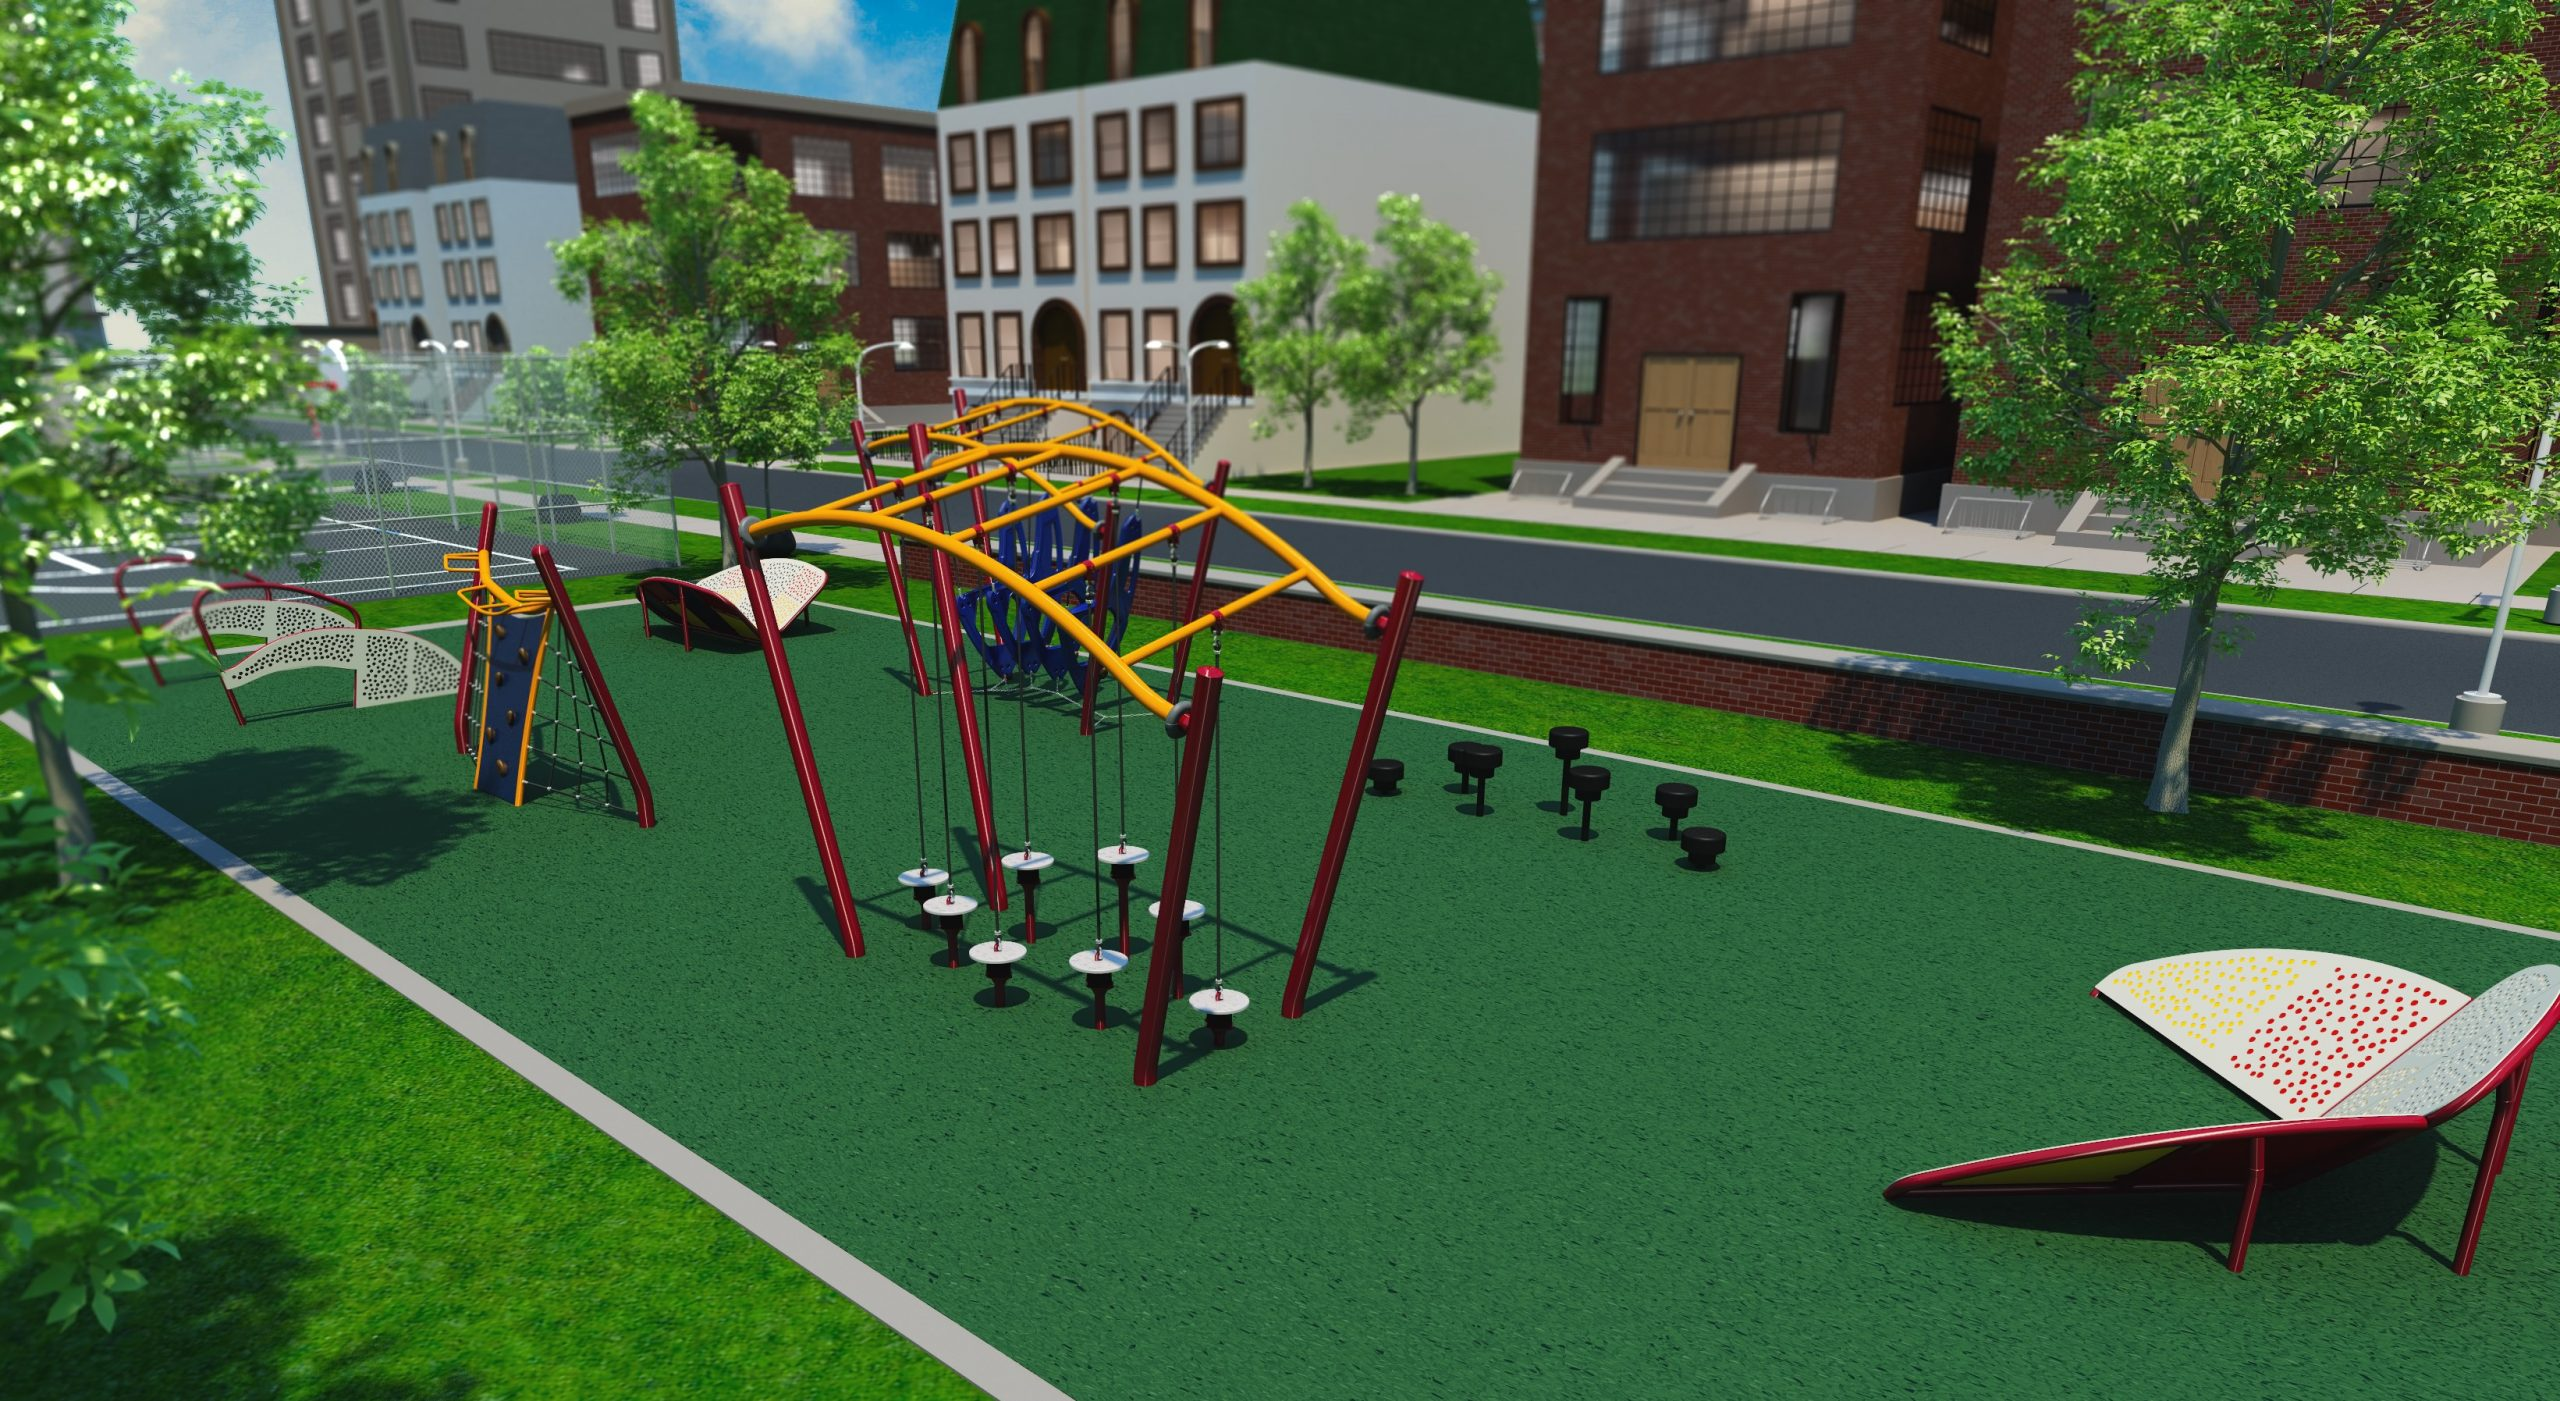 Colonial Park makeover launched with youth fitness course, sand play area — even something for doggie